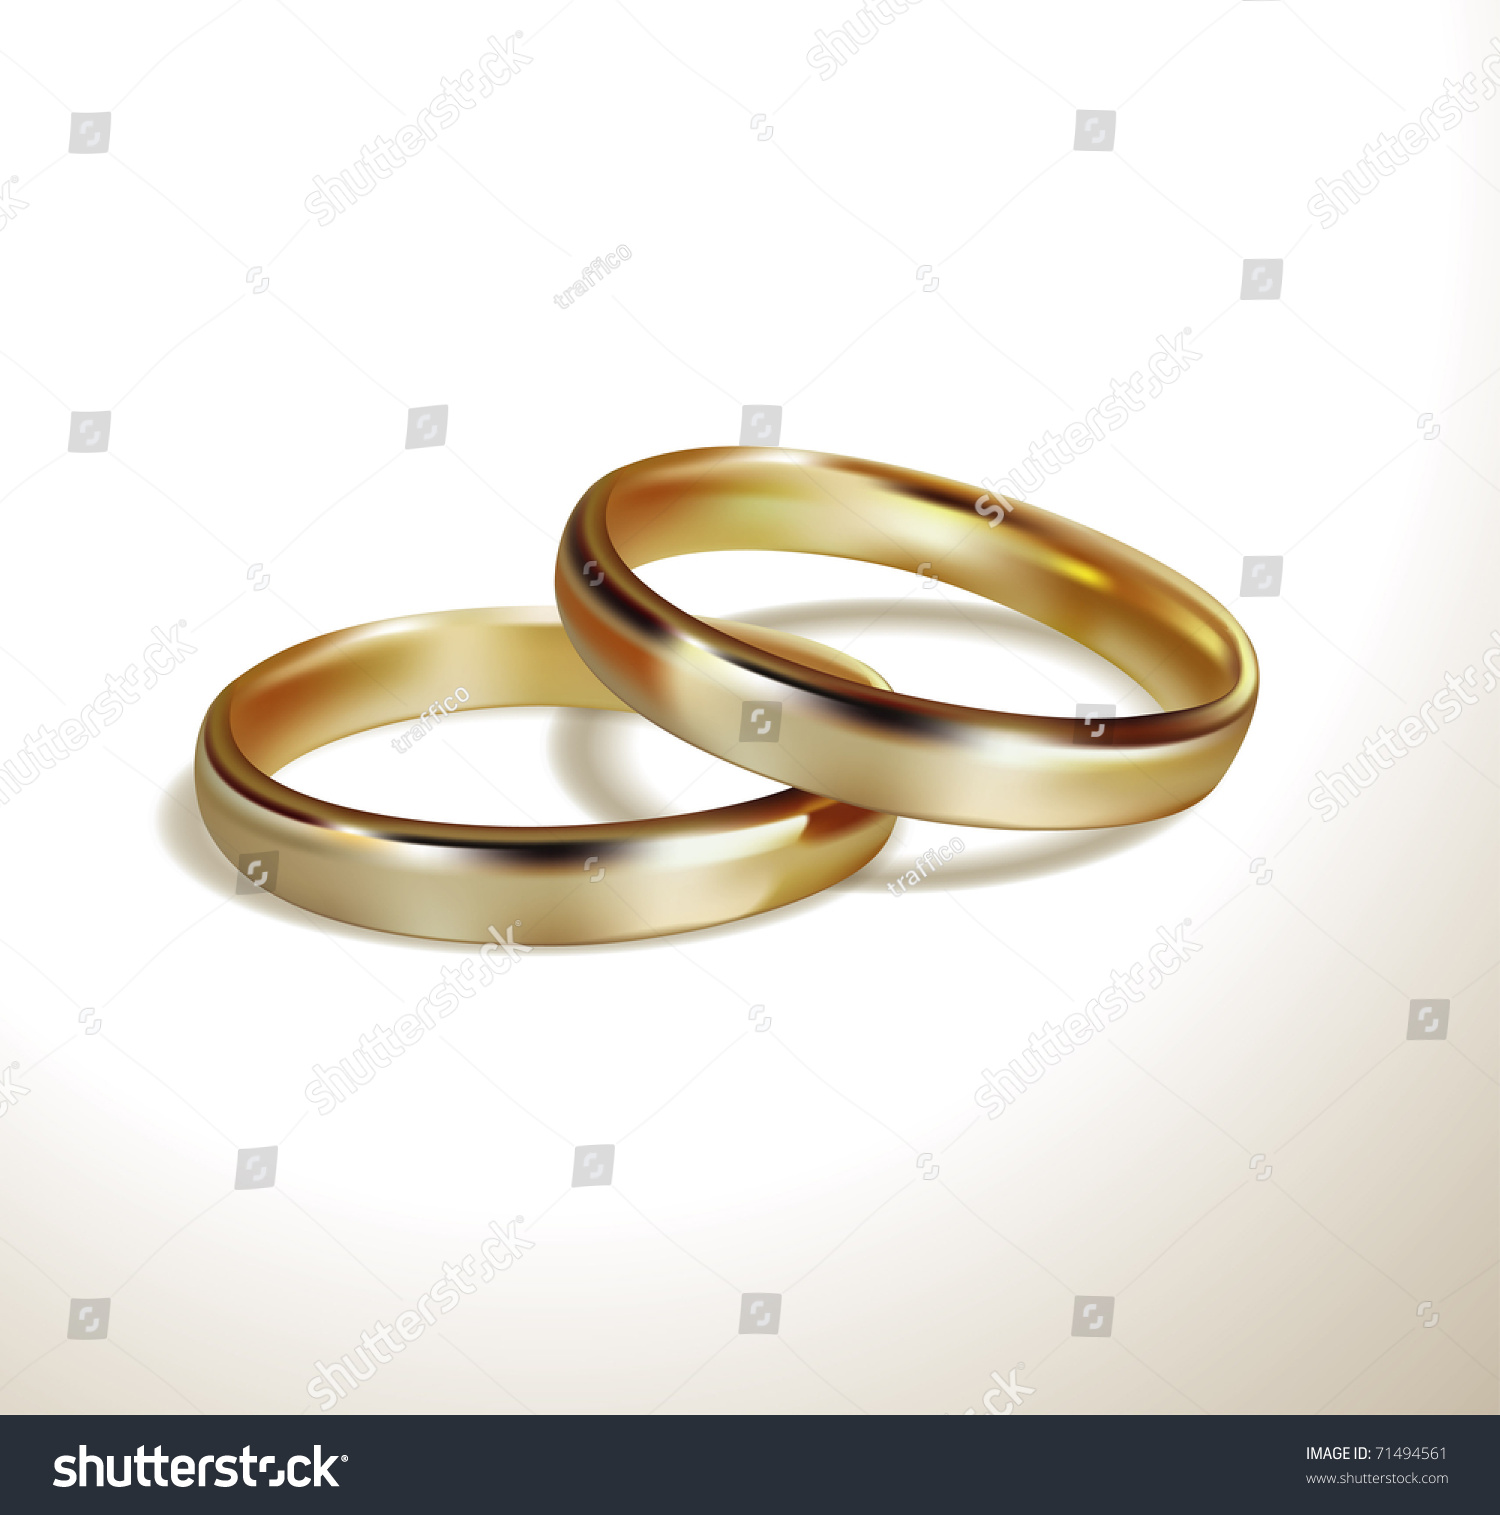 golden couple tag wedding bands rings ring arts gold